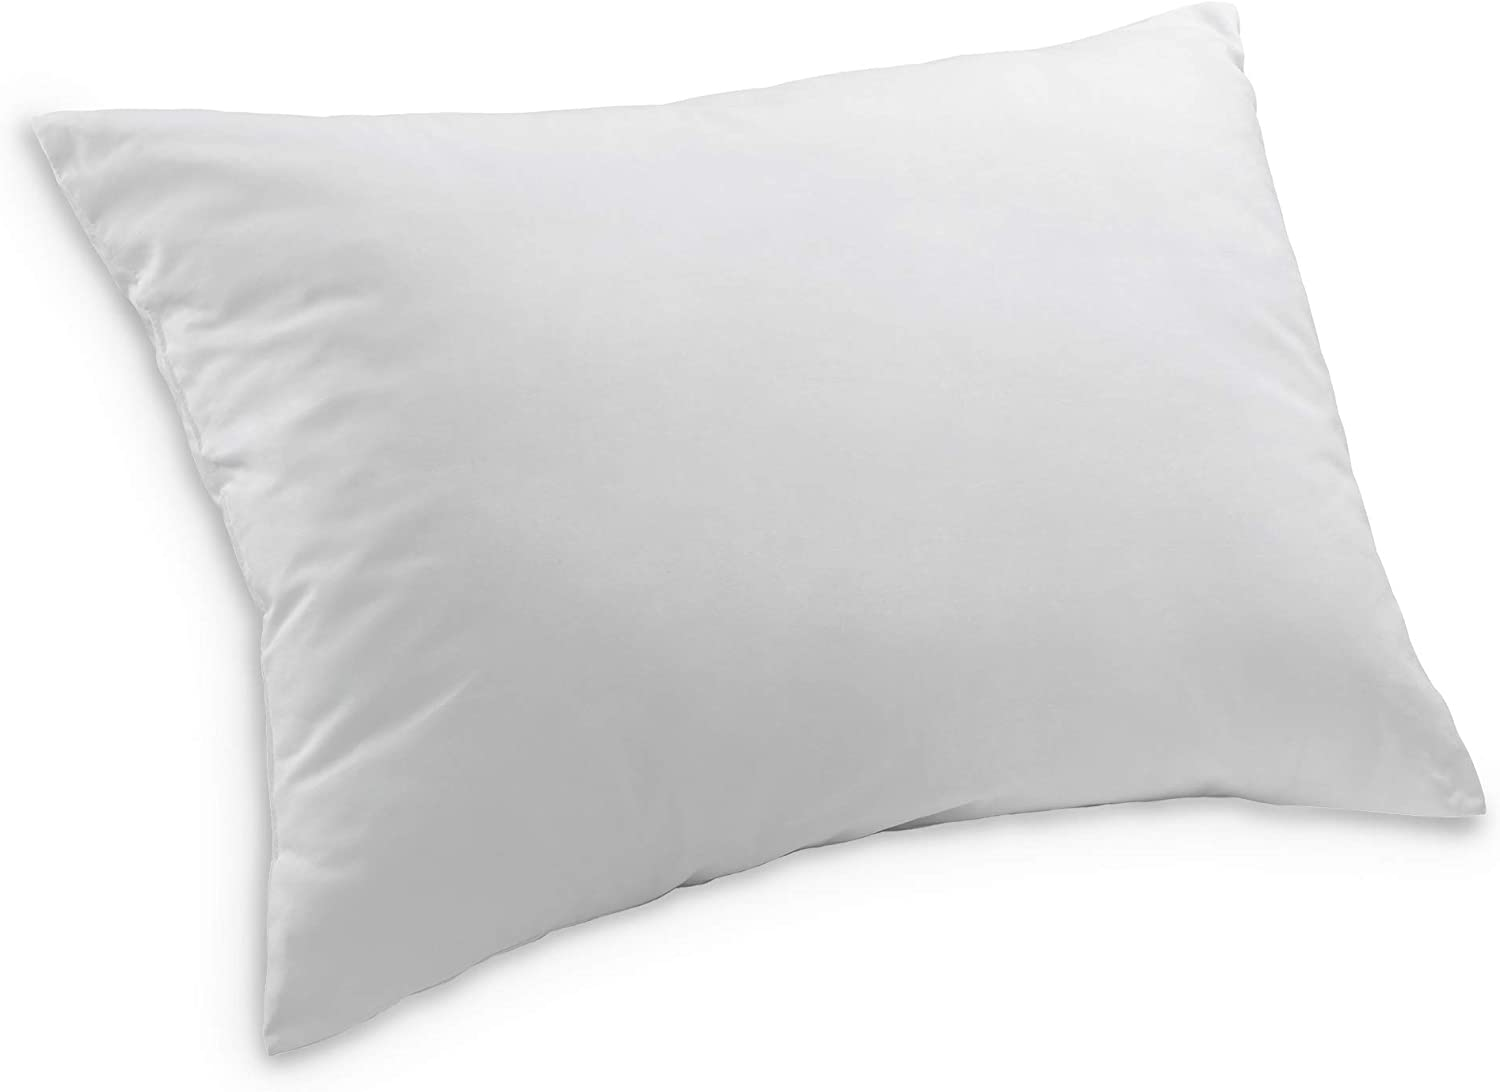 Queen Continental Bedding Sandwich-Q.1 Pillow Double Down Surround-As Seen in Many 5 Star Hotels and Resorts.